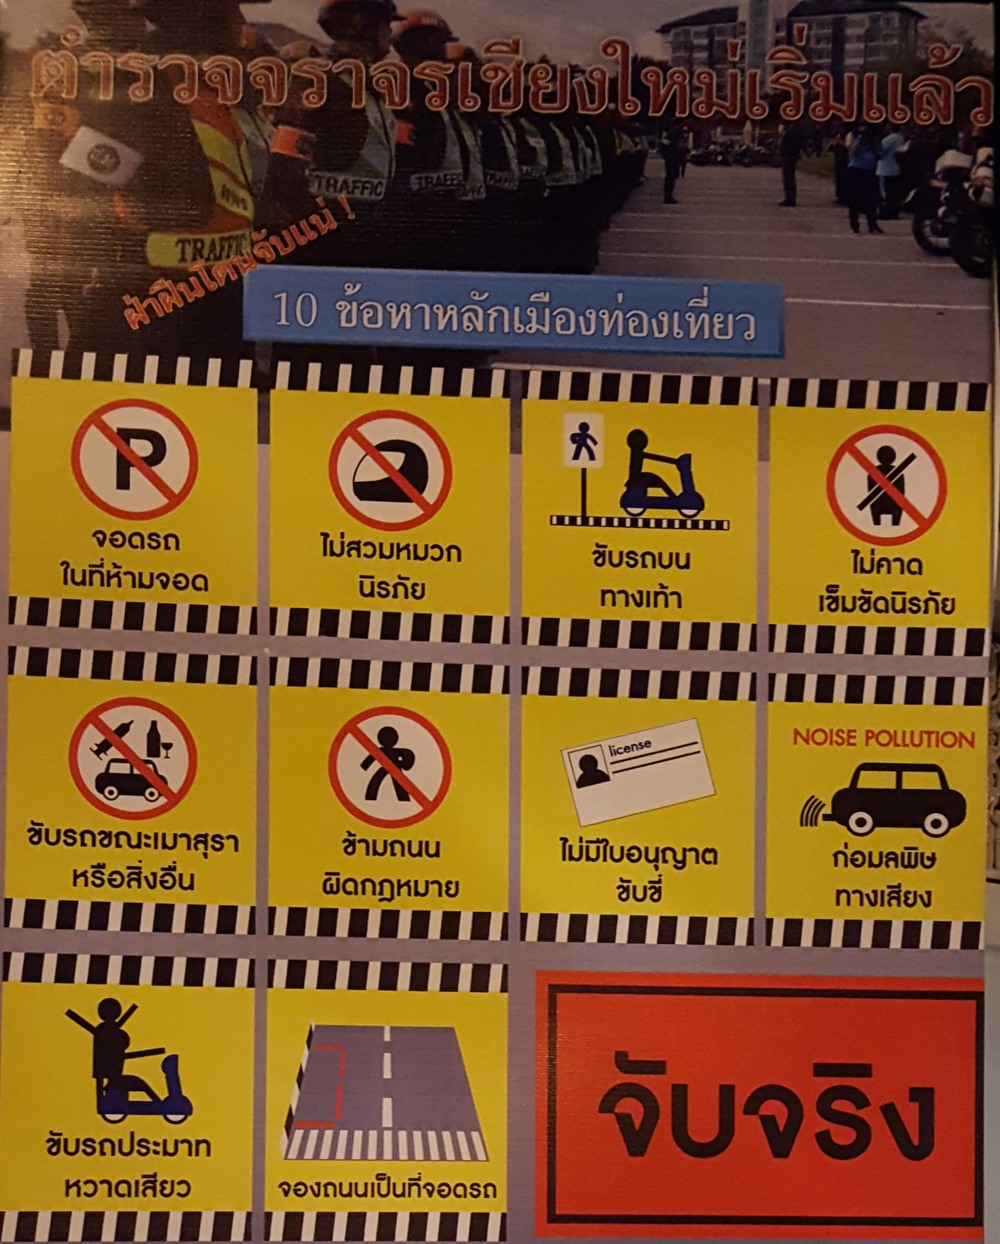 Chiang Mai Ambassador CCTV Network Police State Cameras and Signs